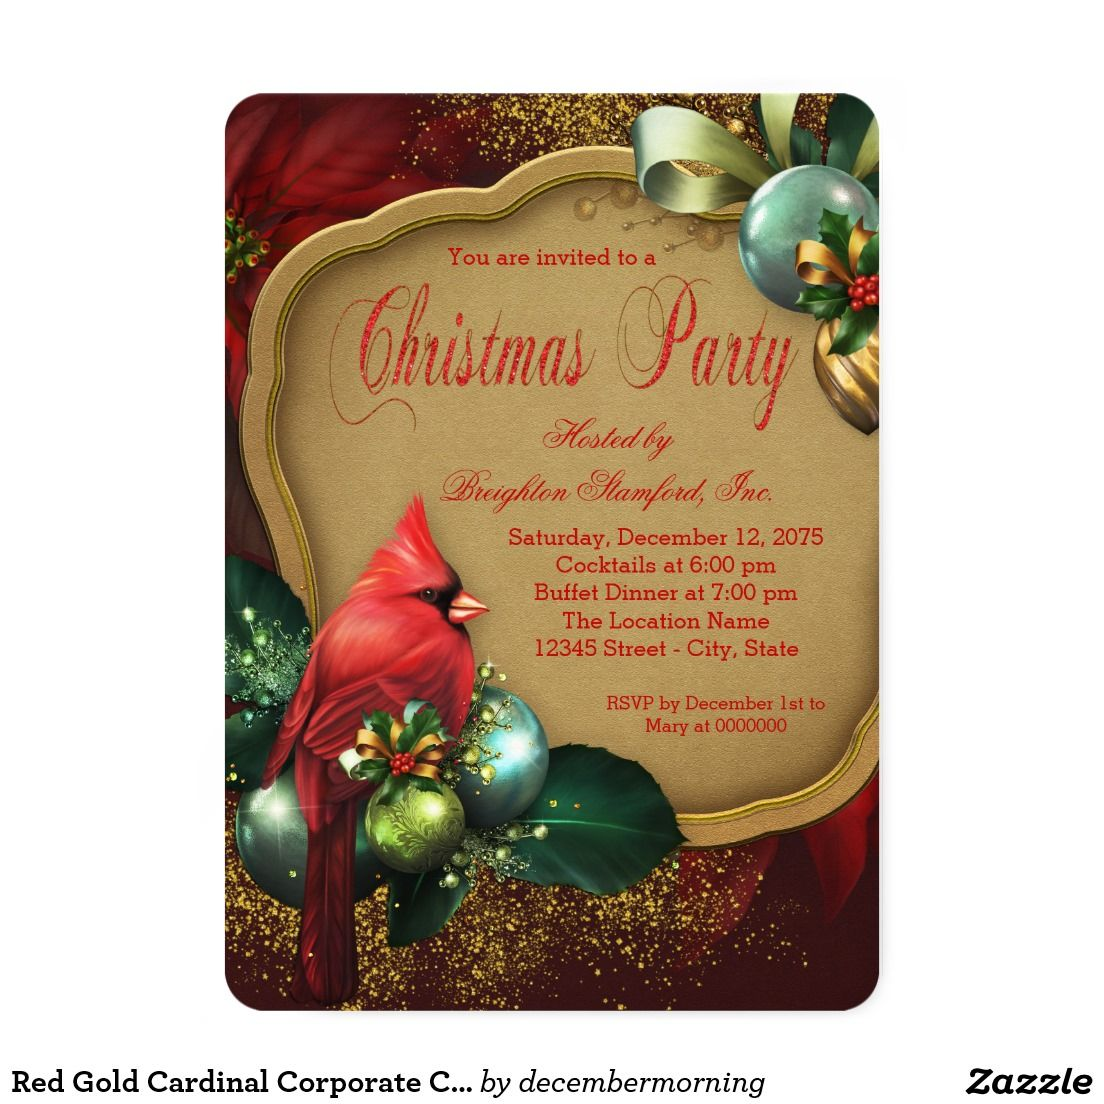 Red Gold Cardinal Corporate Christmas Party Invitation